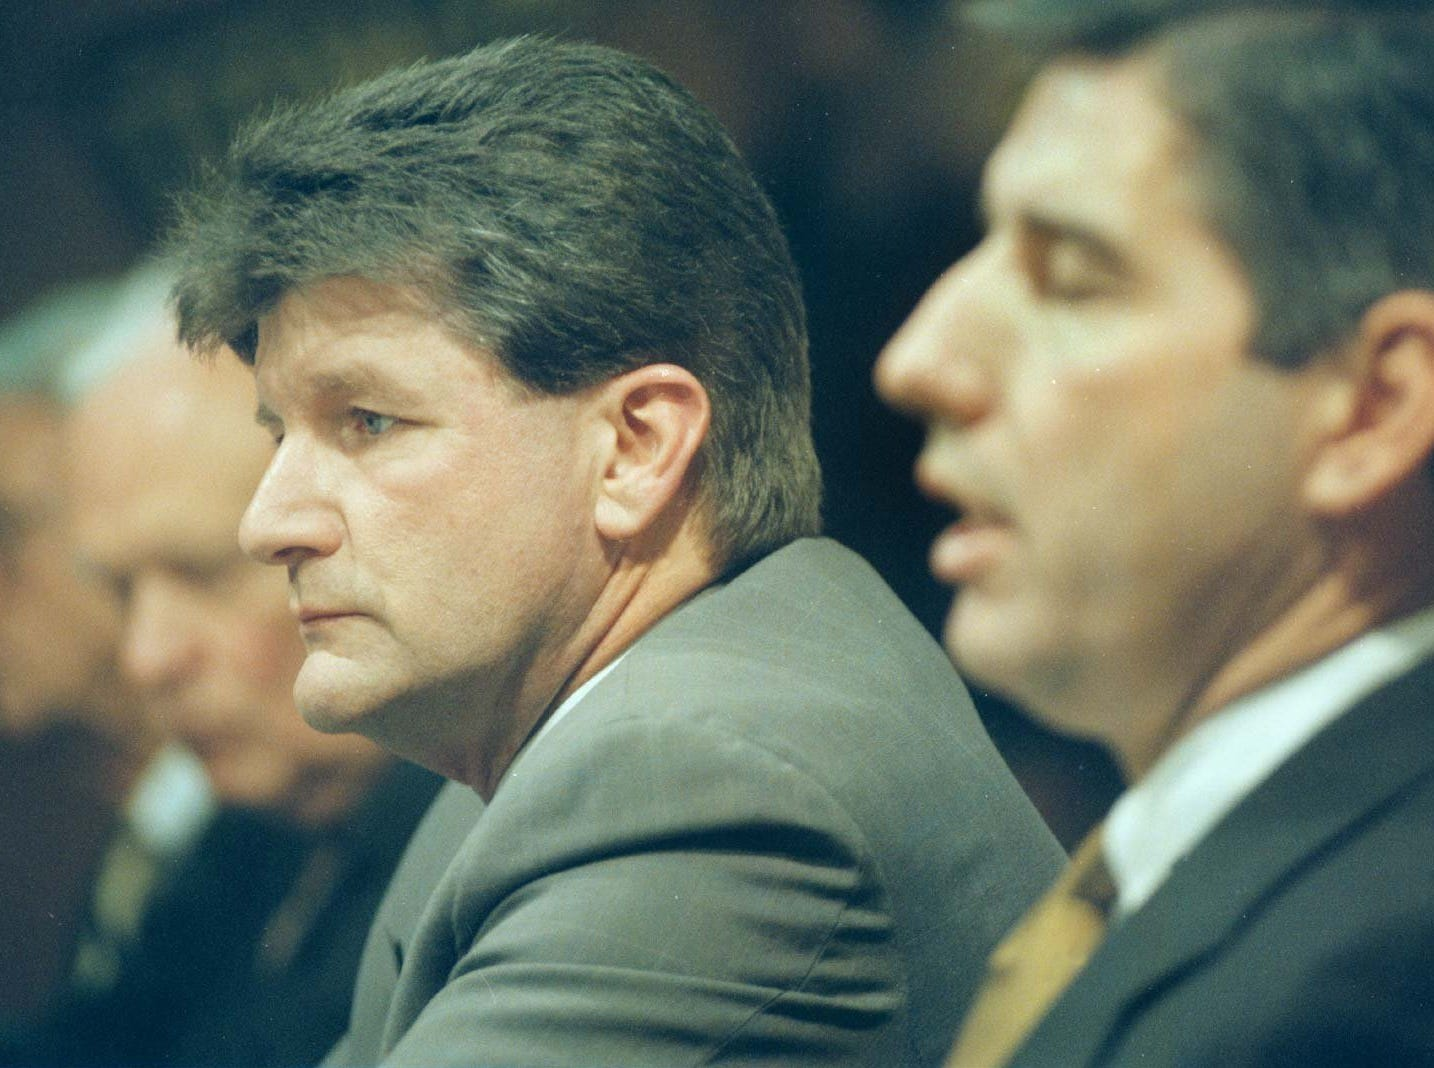 From 1996: Gary Dolphin listens as University of Iowa Athletic Director Bob Bowlsby, right, responds to a question during a news conference after Dolphin was named the new radio play-by-play announcer for the university and Learfield Communications, Inc. In background are Jim Zabel (left) and Bob Brooks.